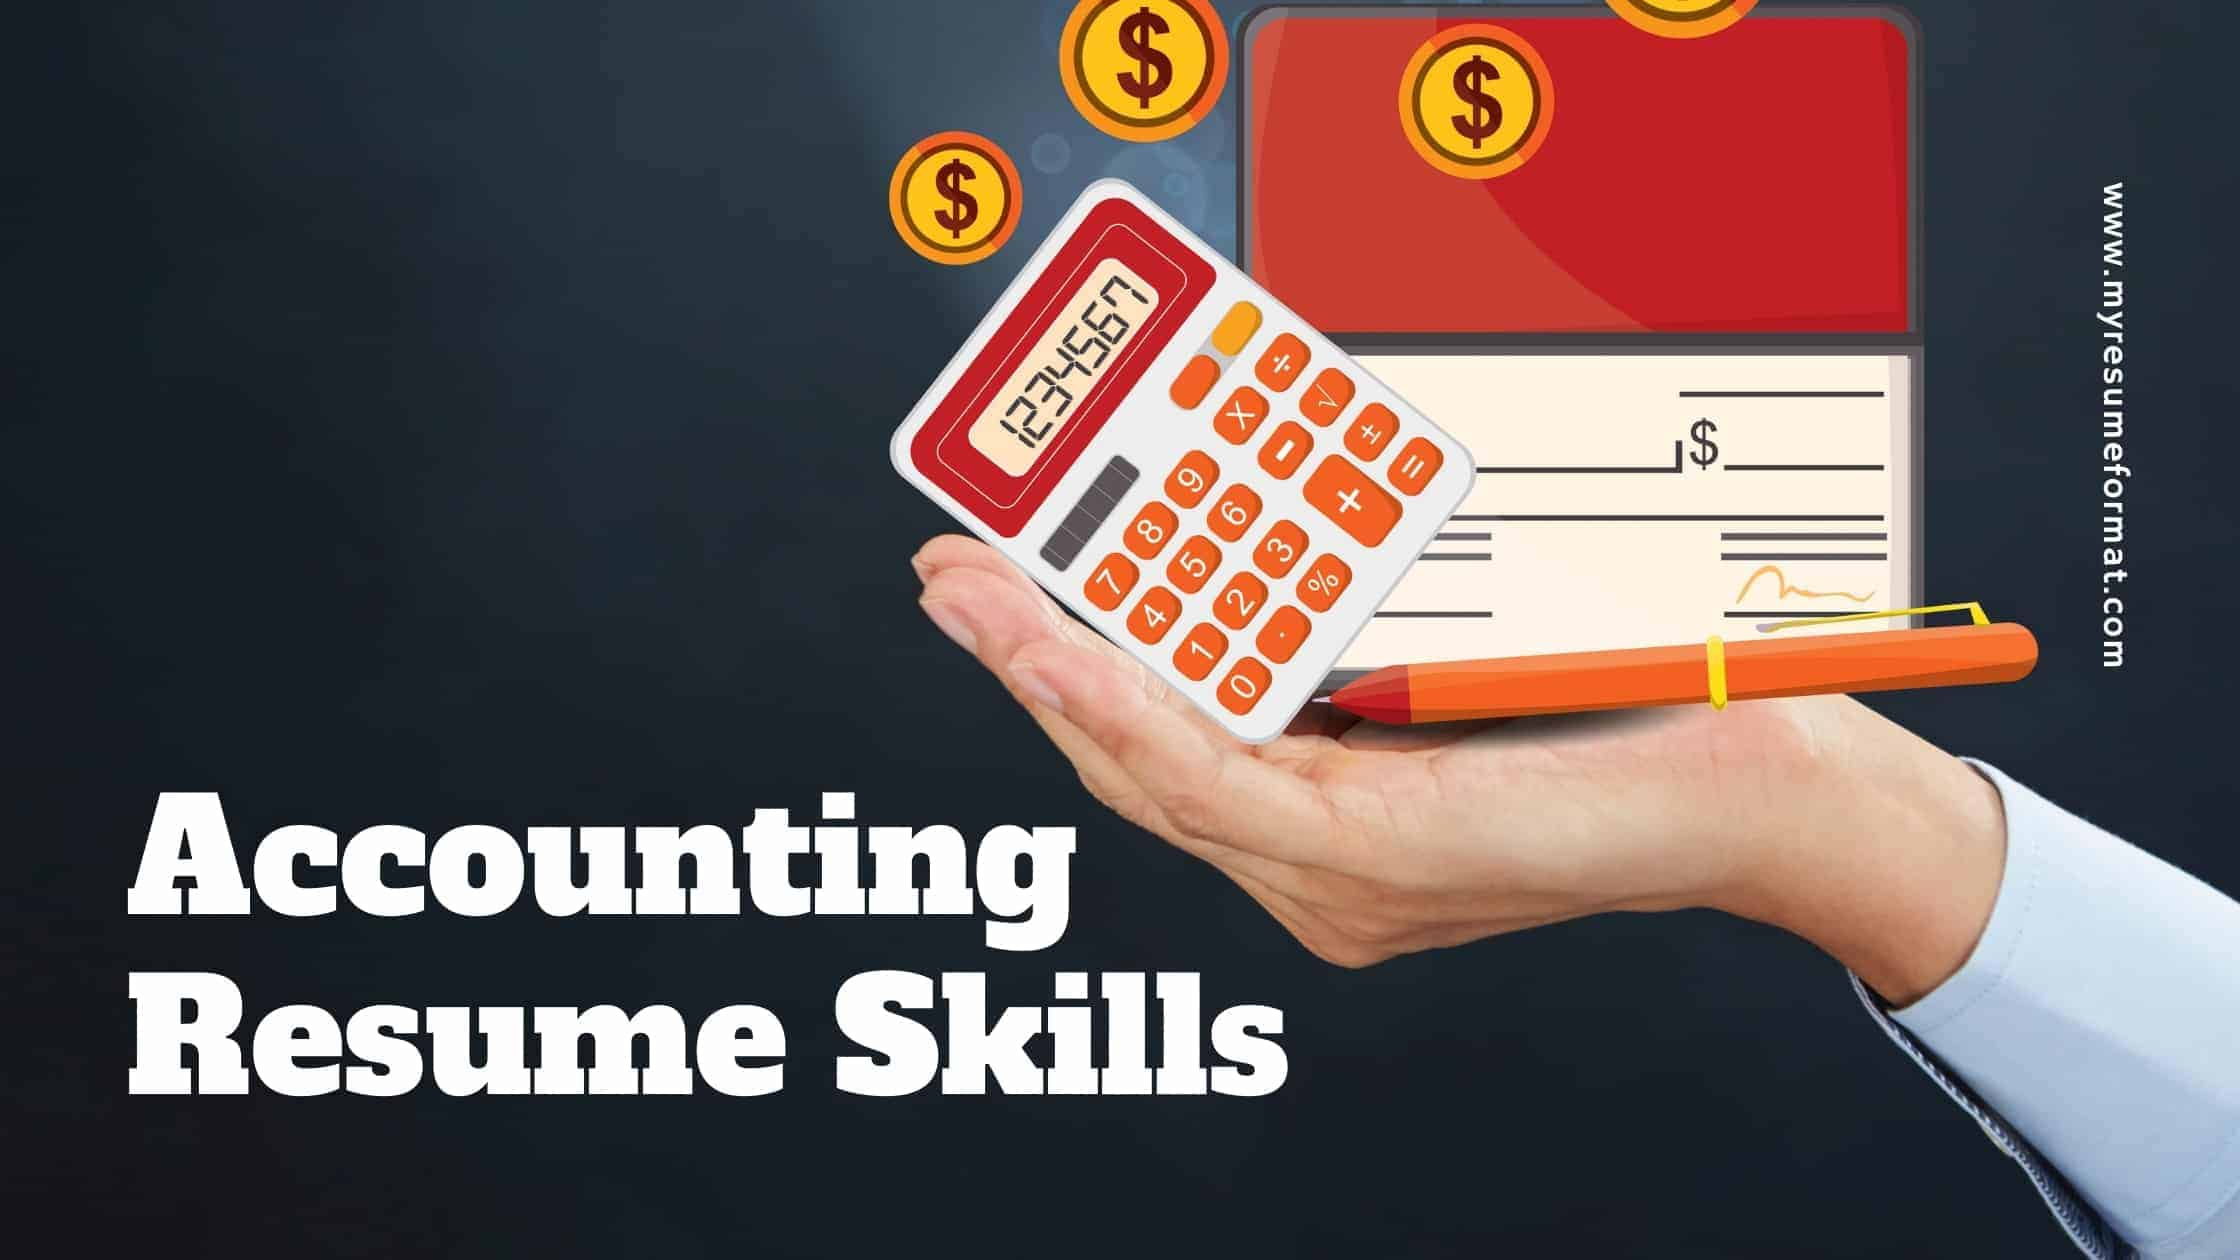 Resume Skills for Accounting